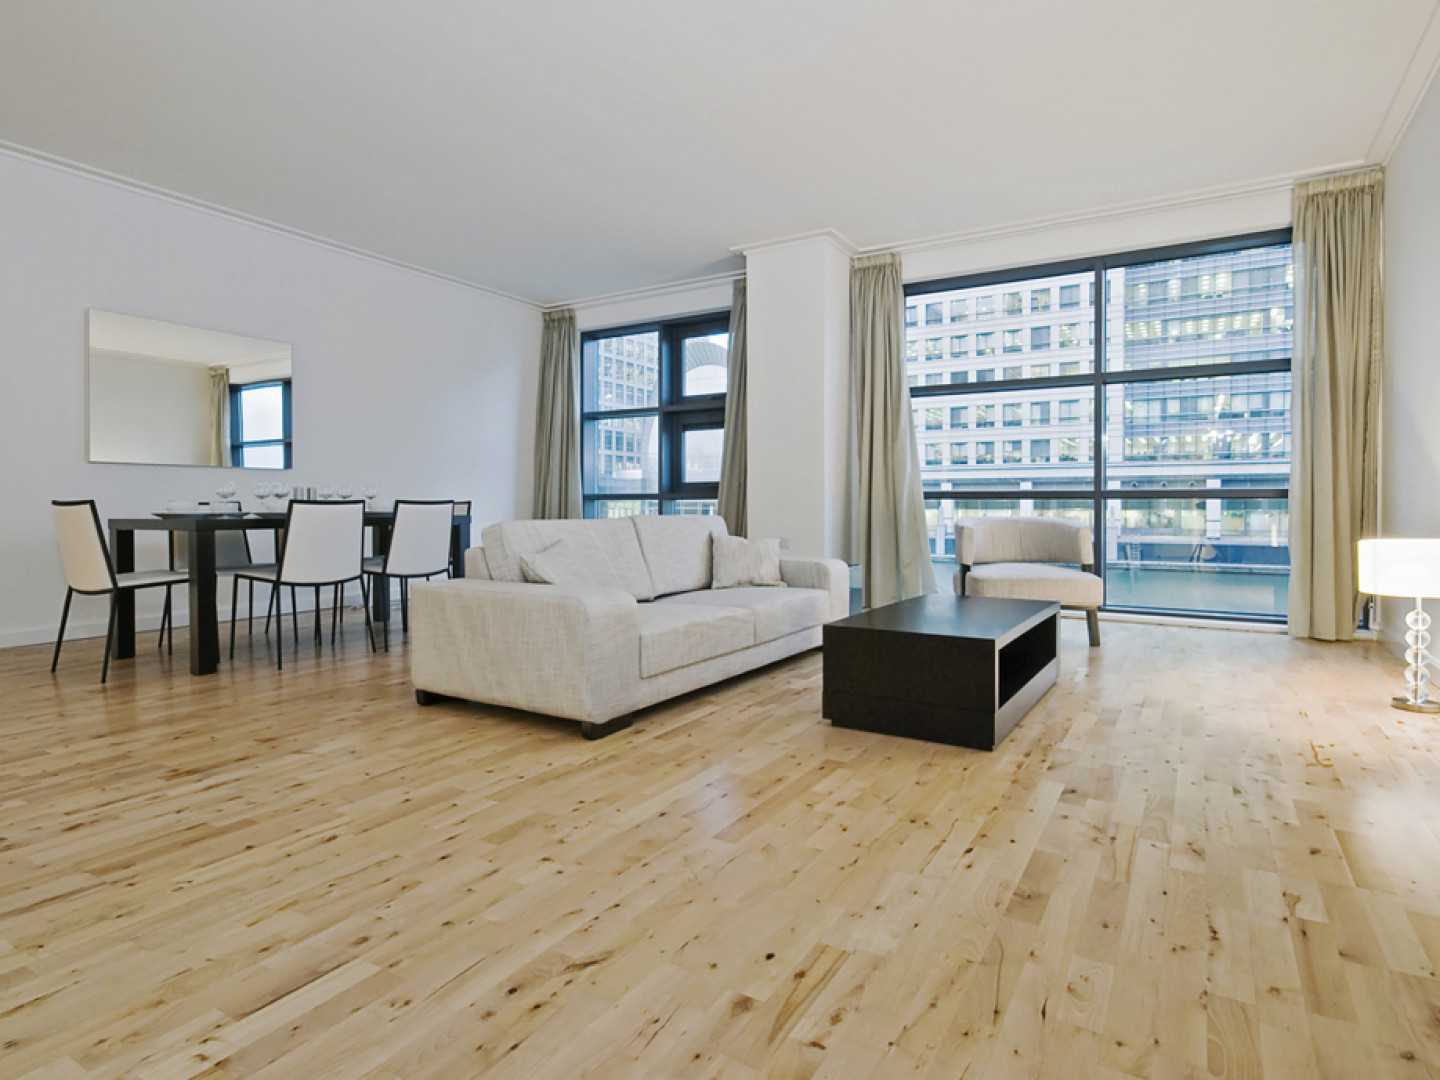 What makes laminate flooring a wise option for homeowners?